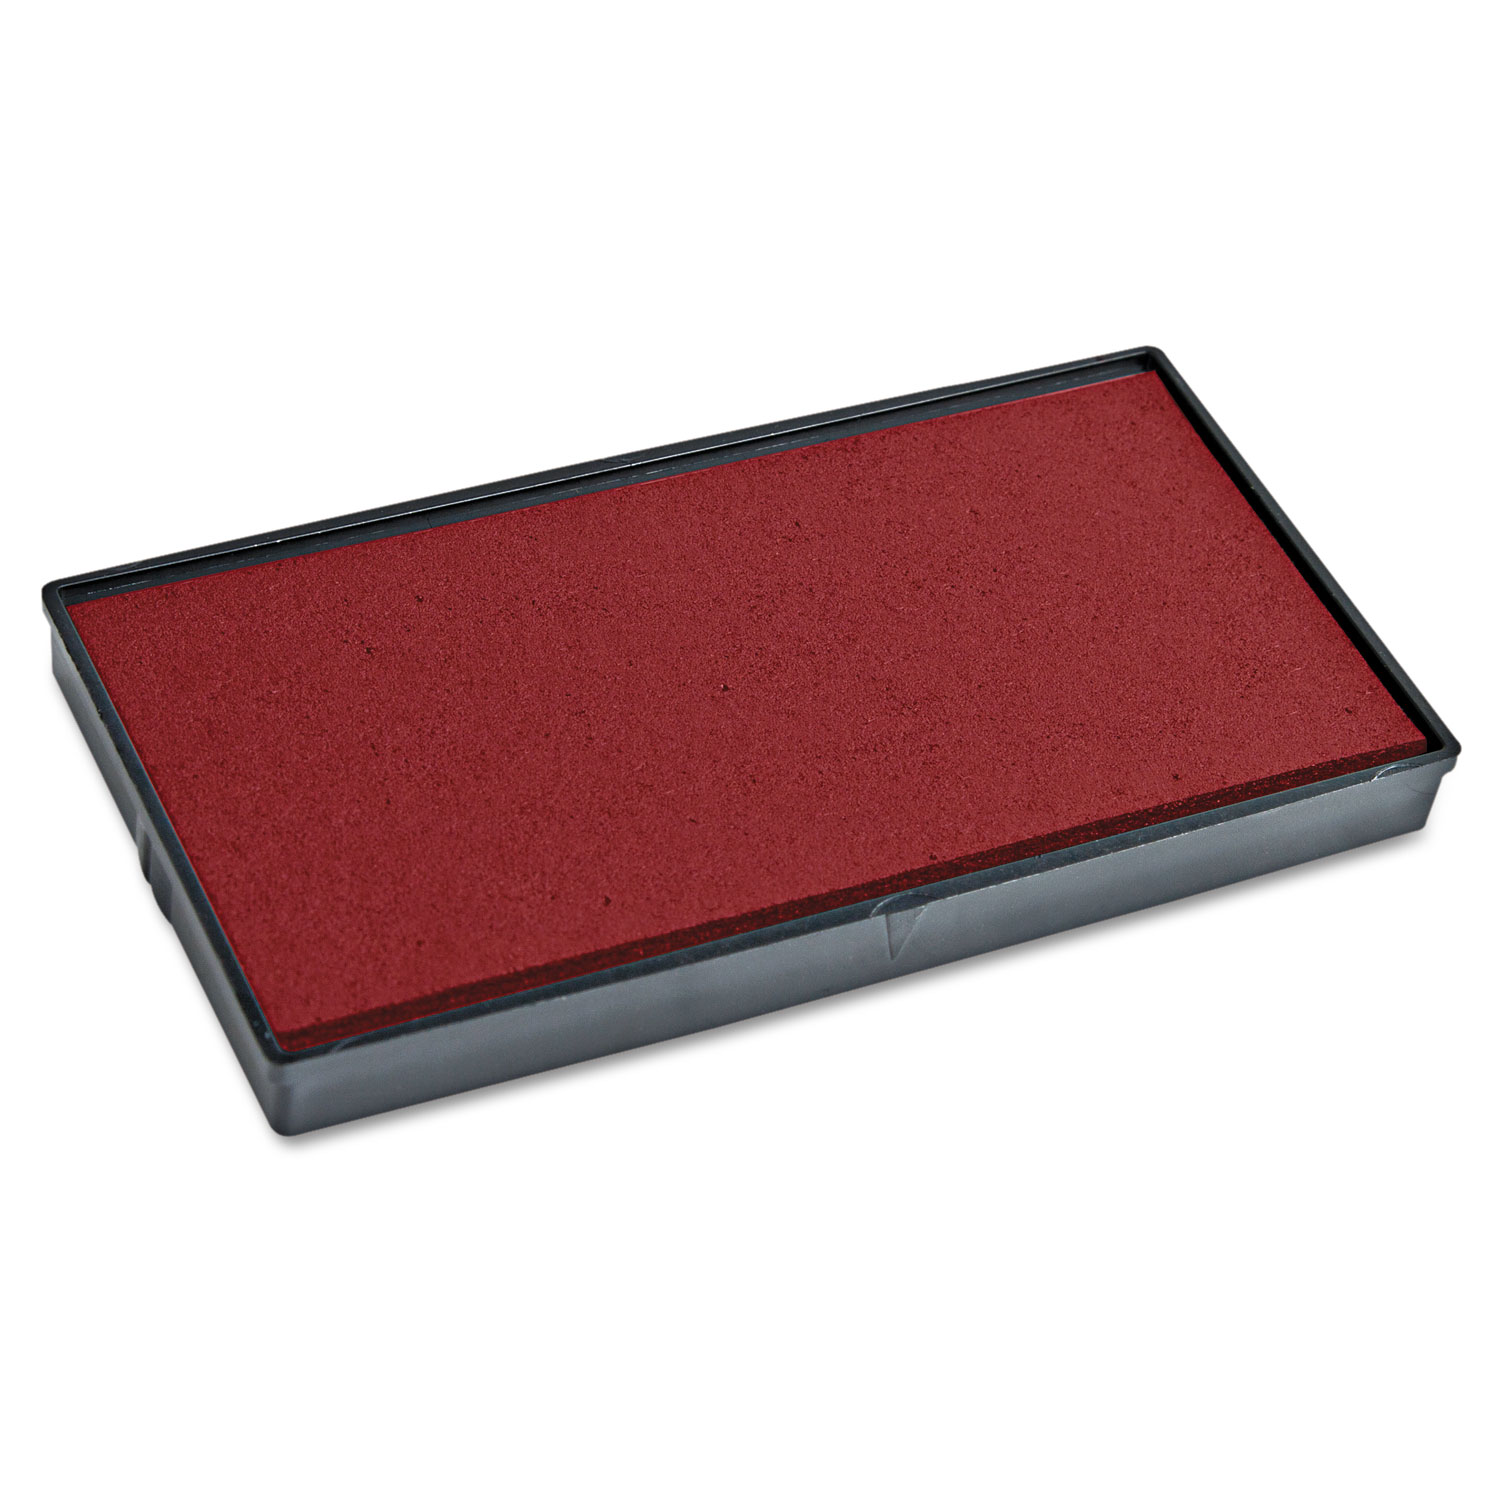 Replacement Ink Pad for 2000PLUS 1SI50P, Red by CONSOLIDATED STAMP